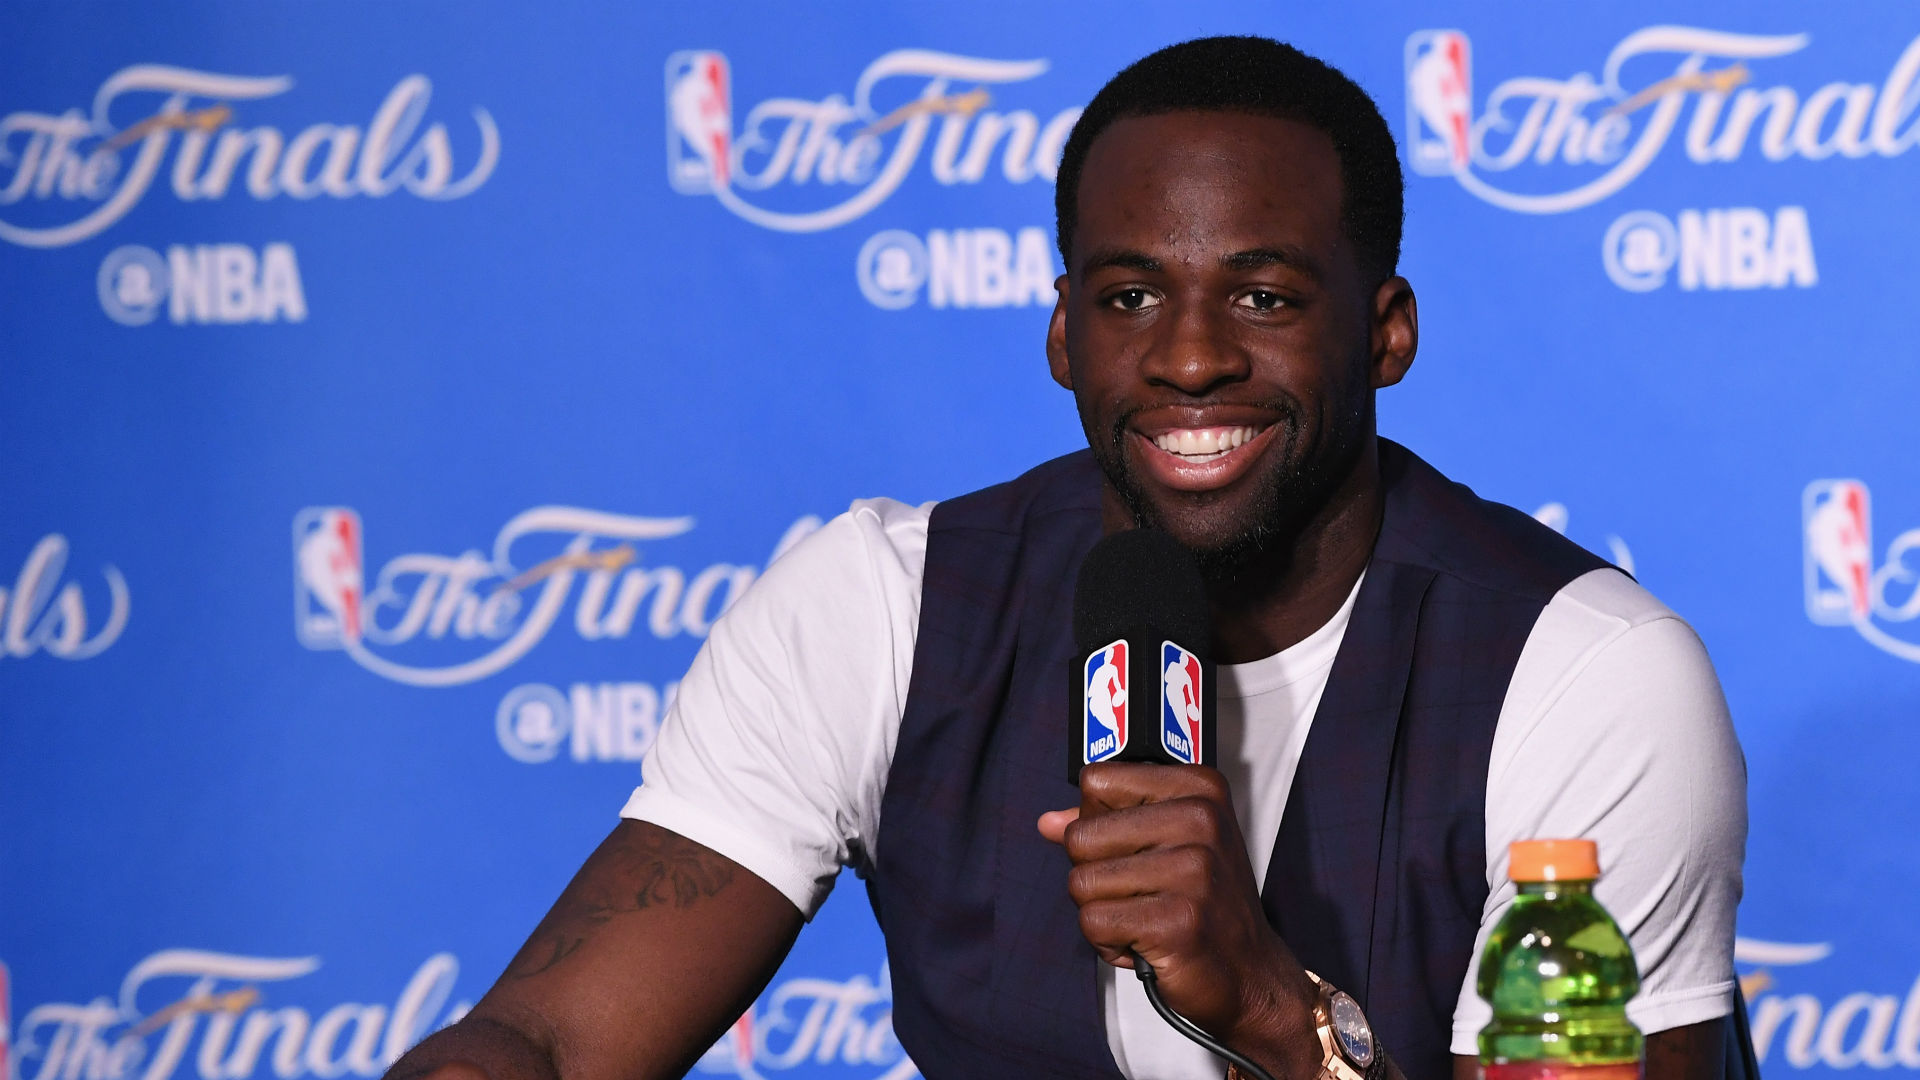 Draymond Green's mom got into heated argument with Cavs fans